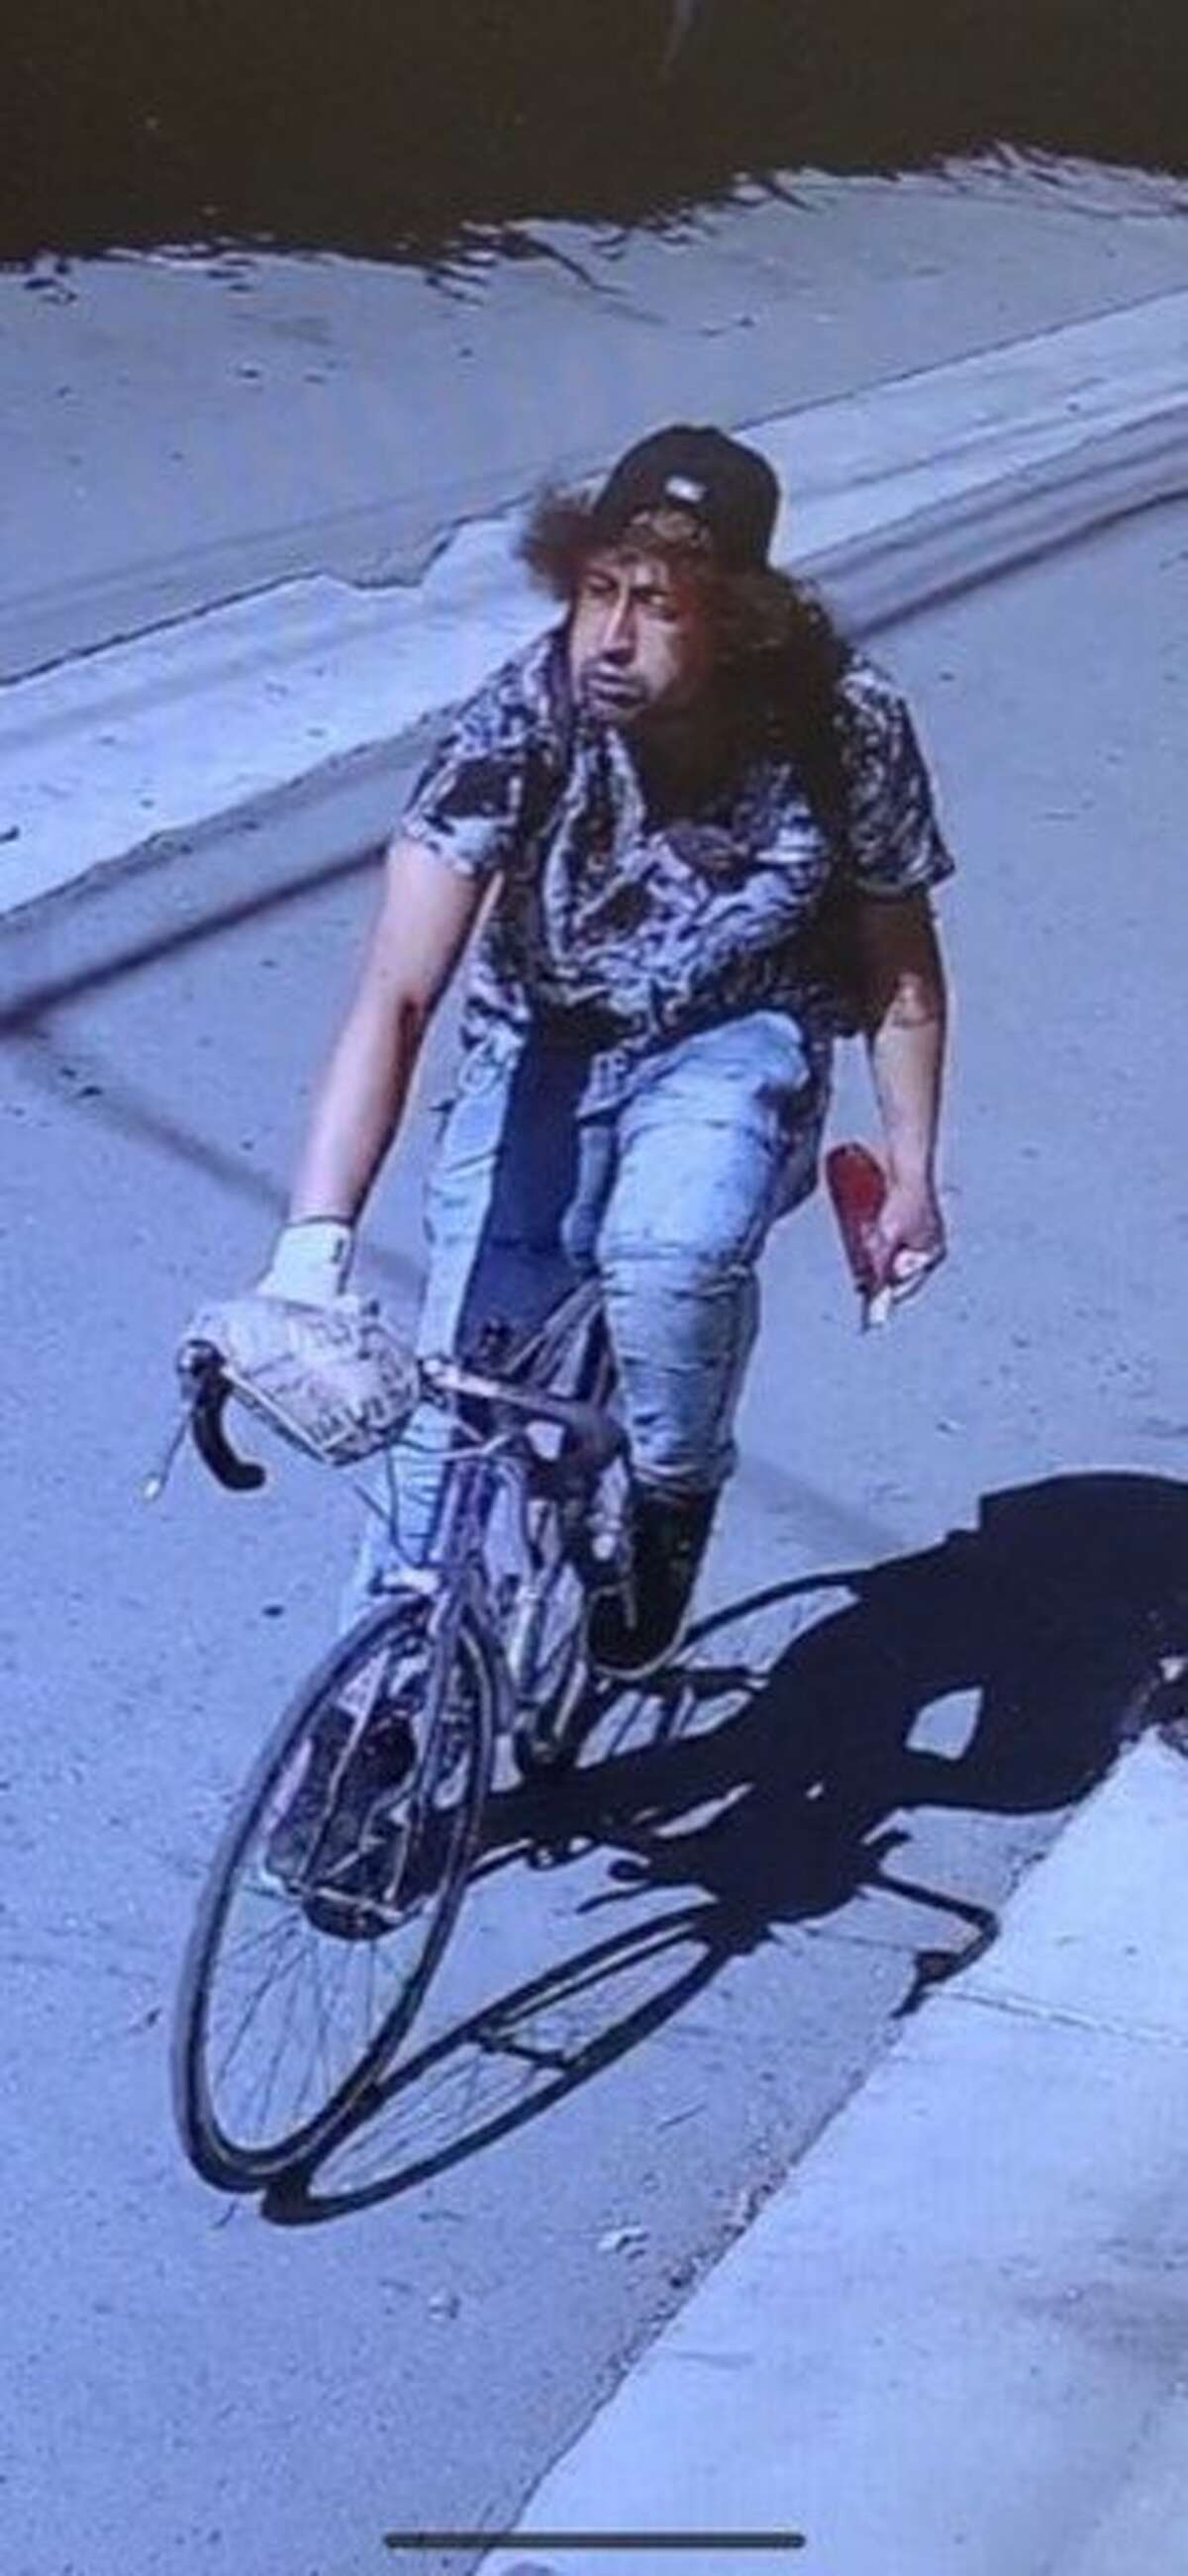 The suspect in a vehicle arson was last seen riding his bicycle southbound on Rolision Alley toward Marsh Road.